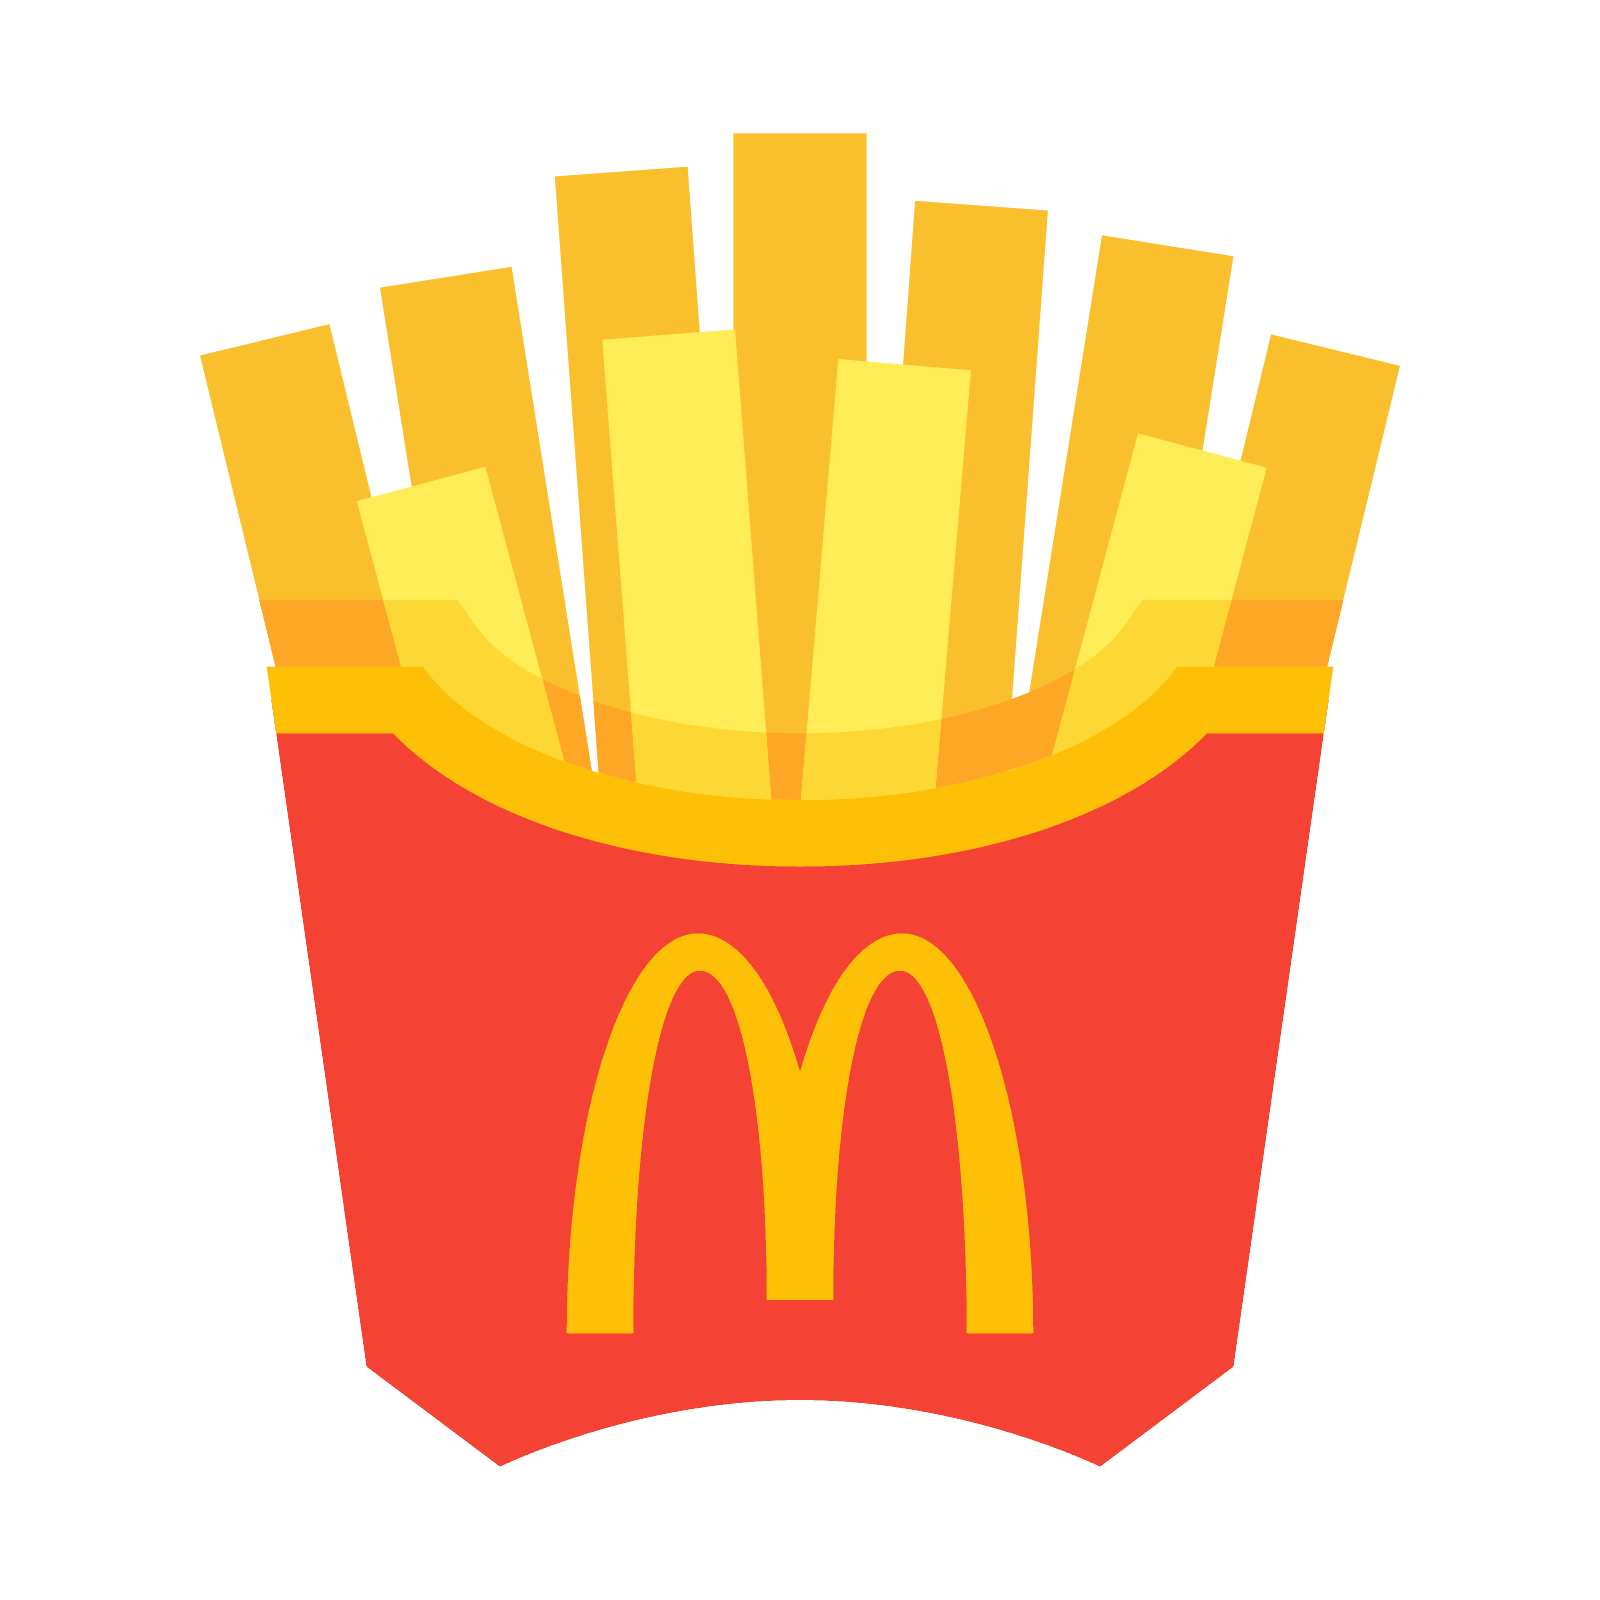 Fries vector. Mcdonald s french icon